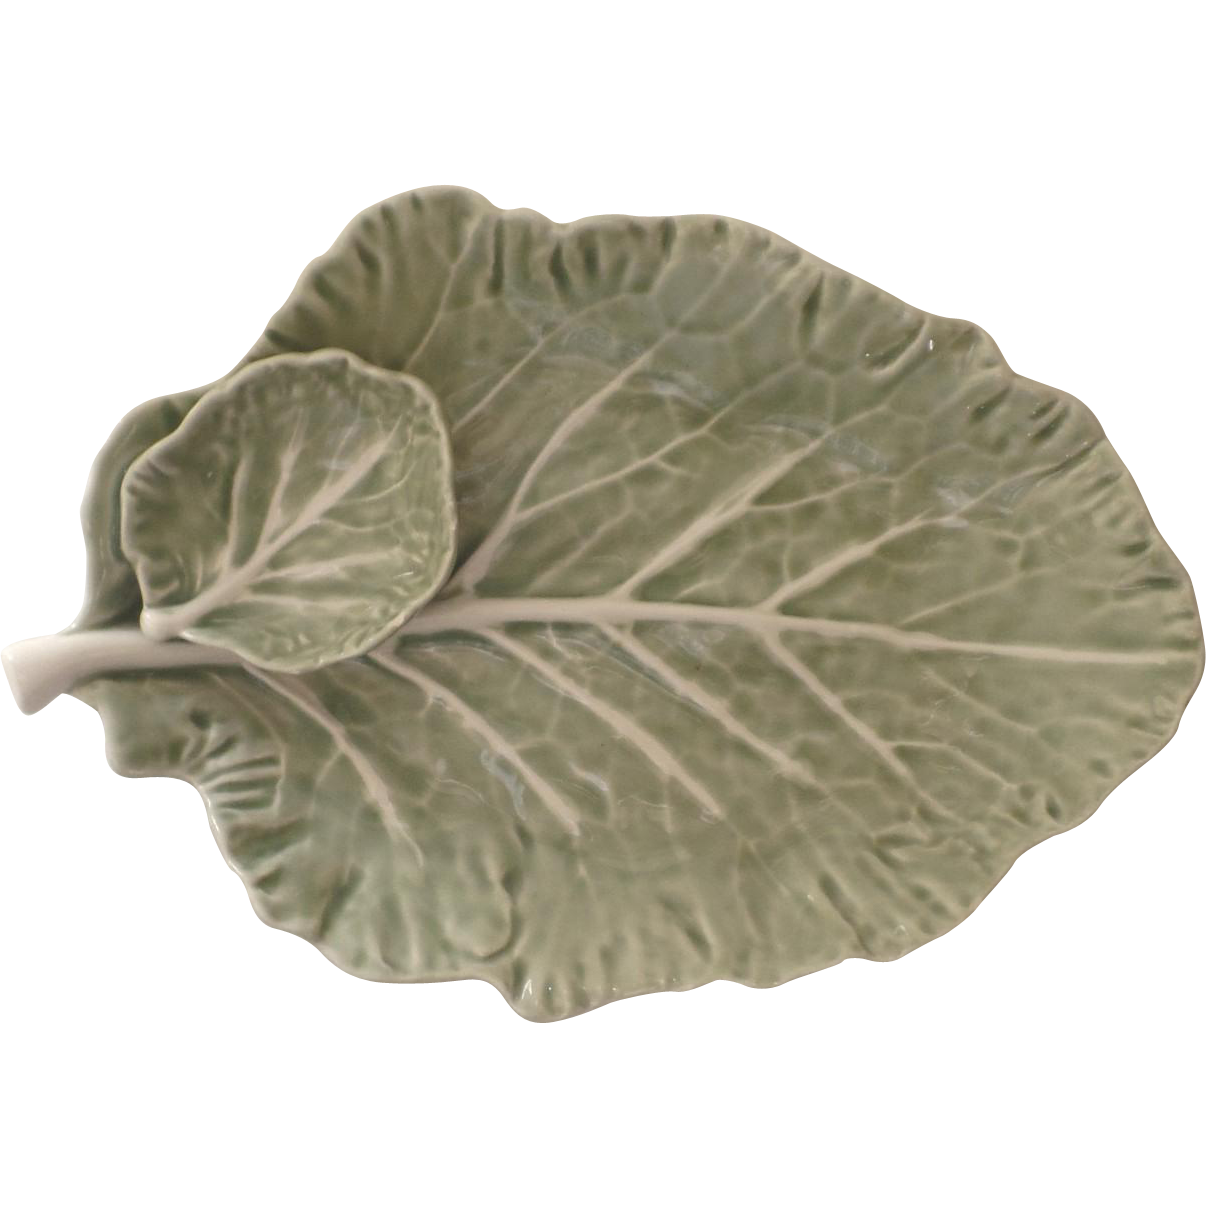 Vintage bordallo pinheiro cabbage portugal platter chip - Bordallo pinheiro portugal ...